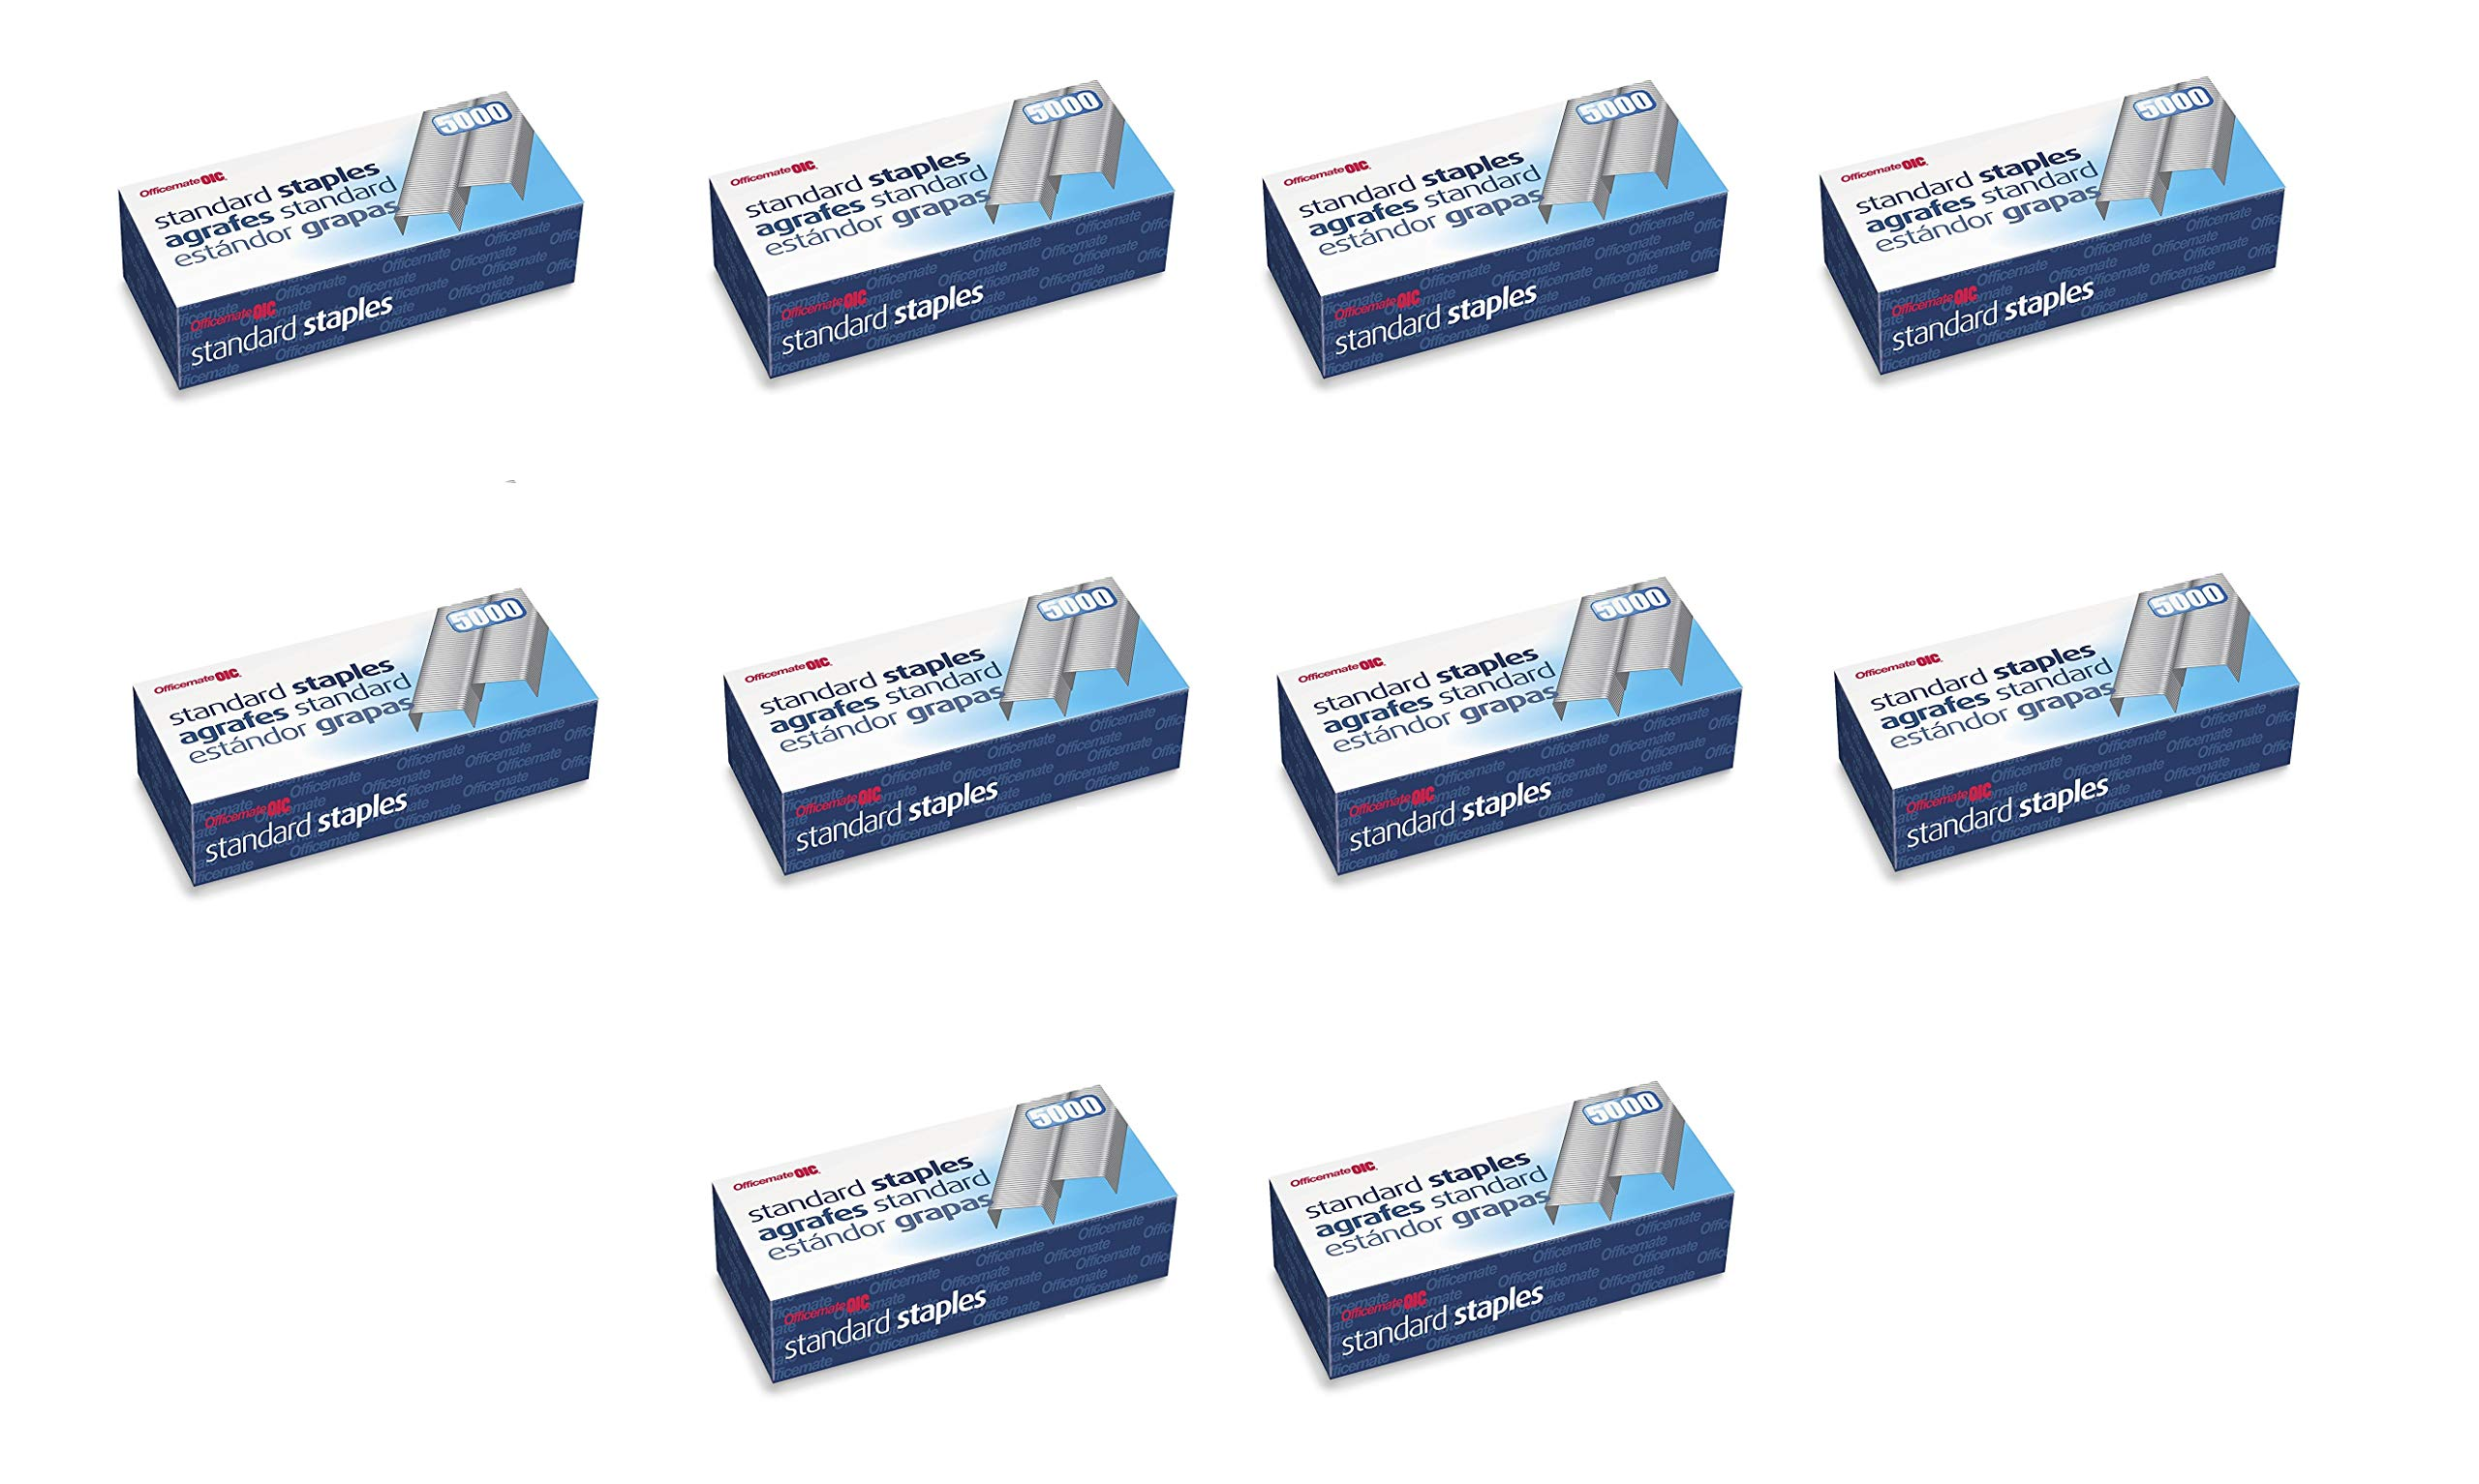 Officemate Standard Staples, 210 per strip, 20 Sheets Capacity, 5,000 per Box, Sold as 10 Pack (91900) by Officemate